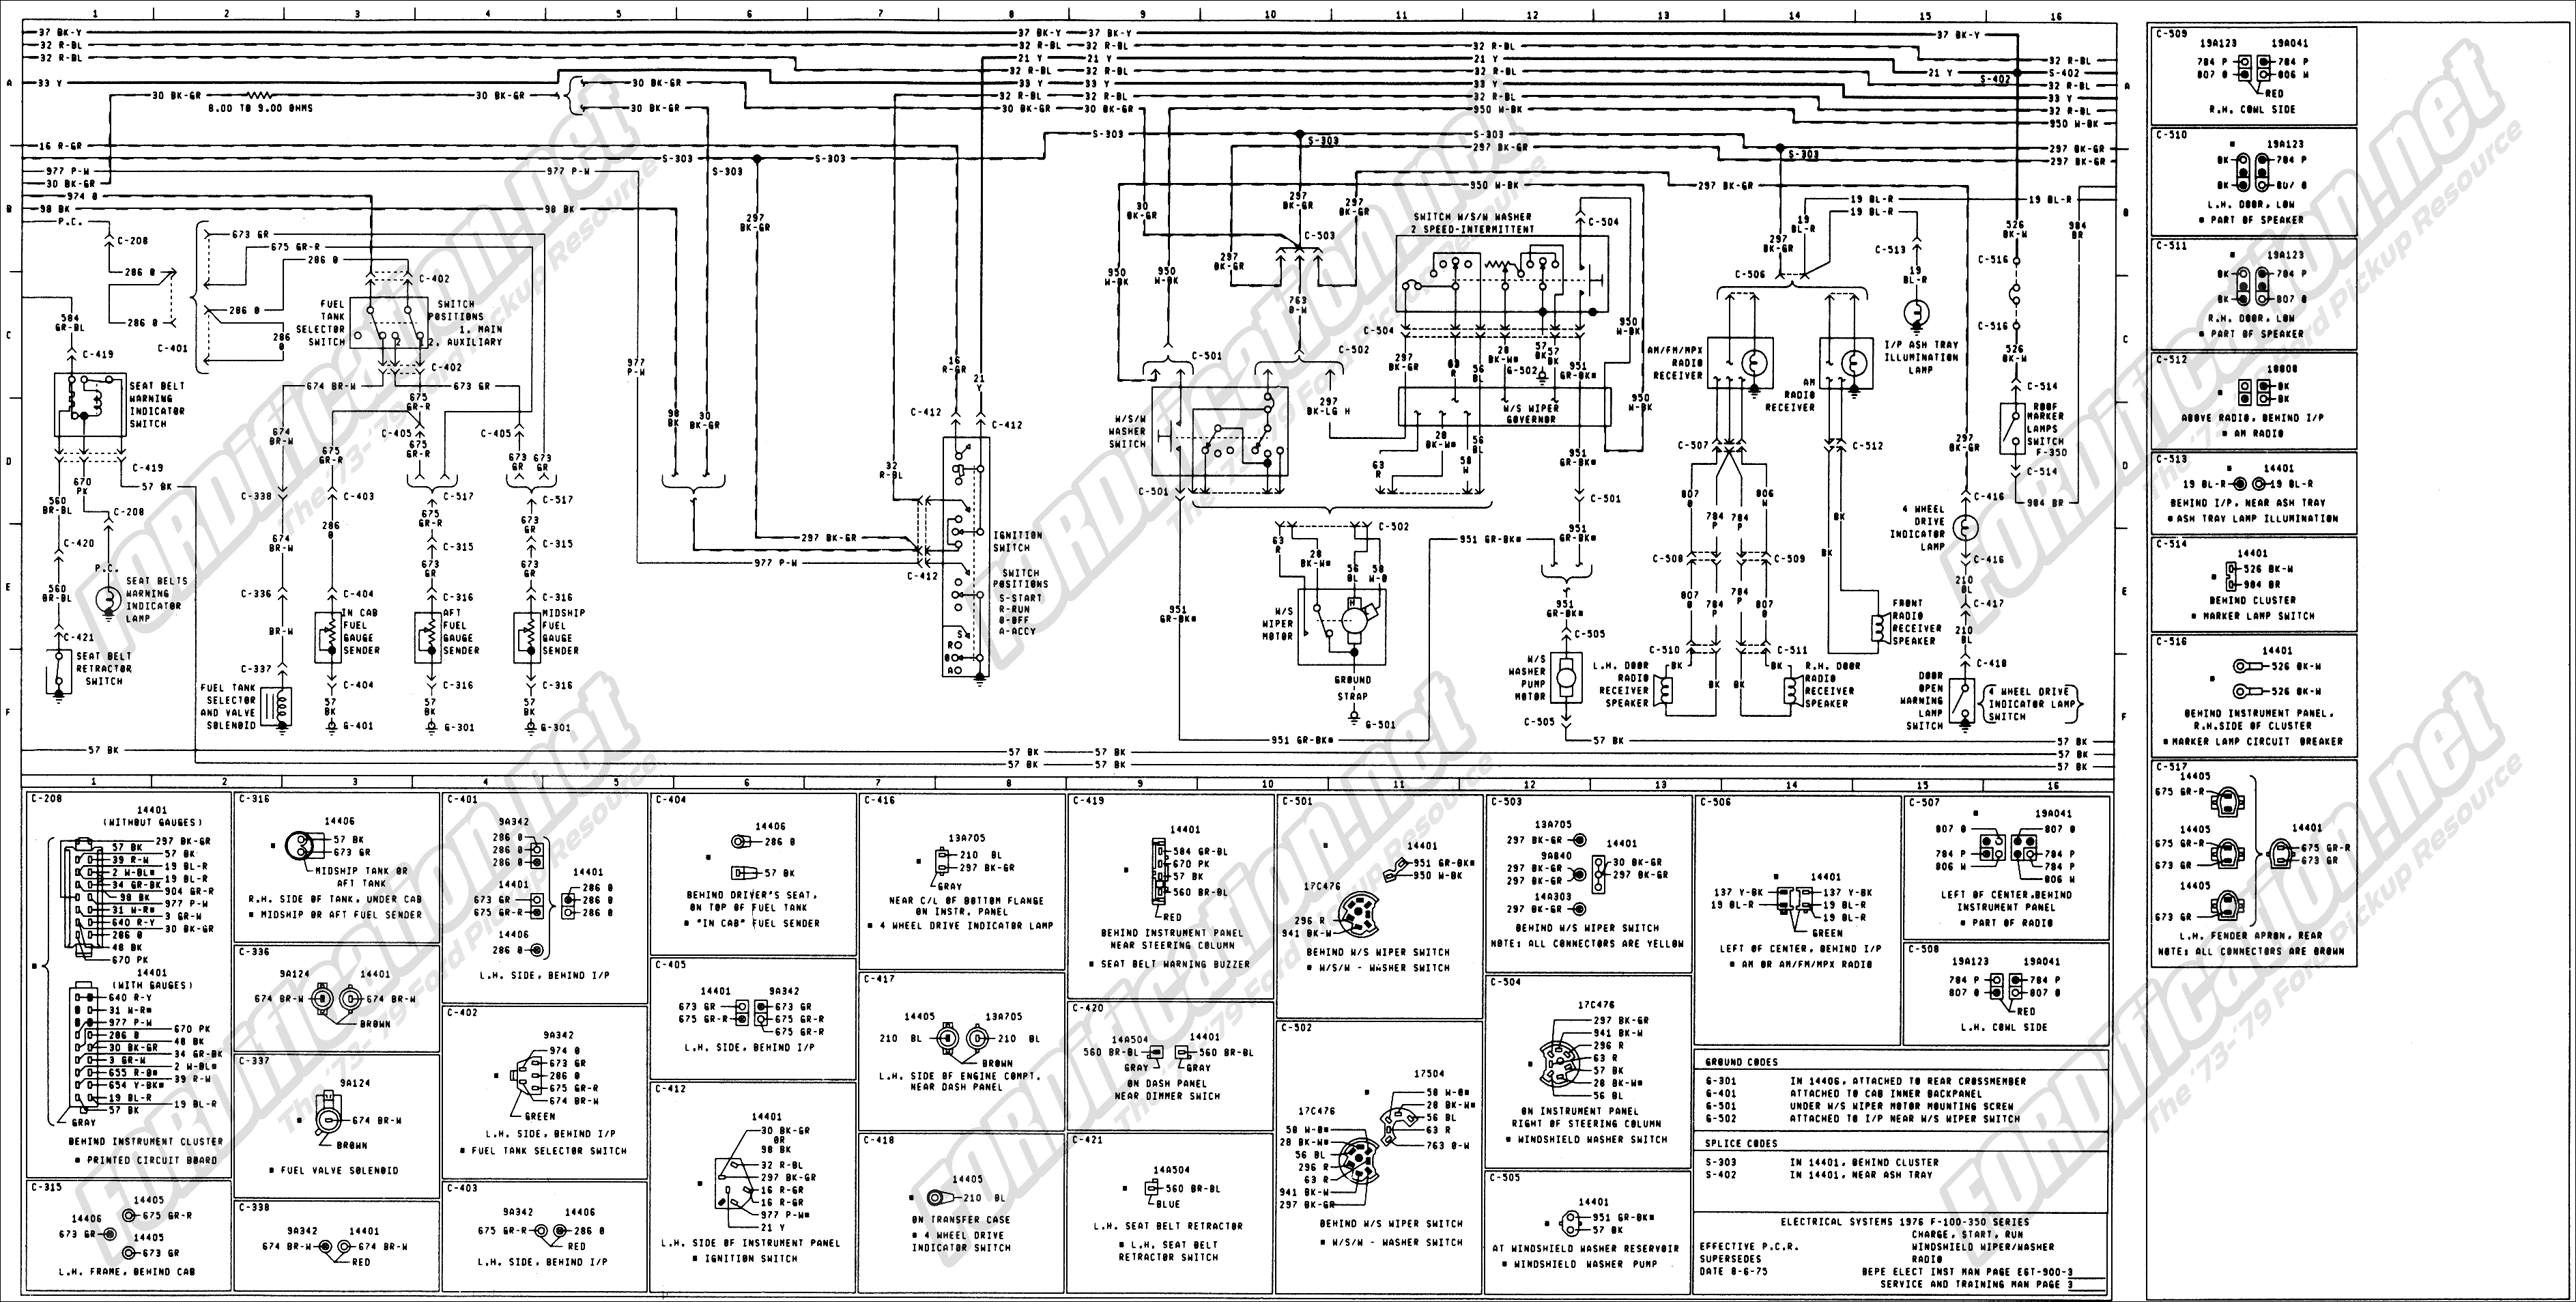 1973-1979 Ford Truck Wiring Diagrams & Schematics - Fordification - 02 F350 Trailer Wiring Diagram